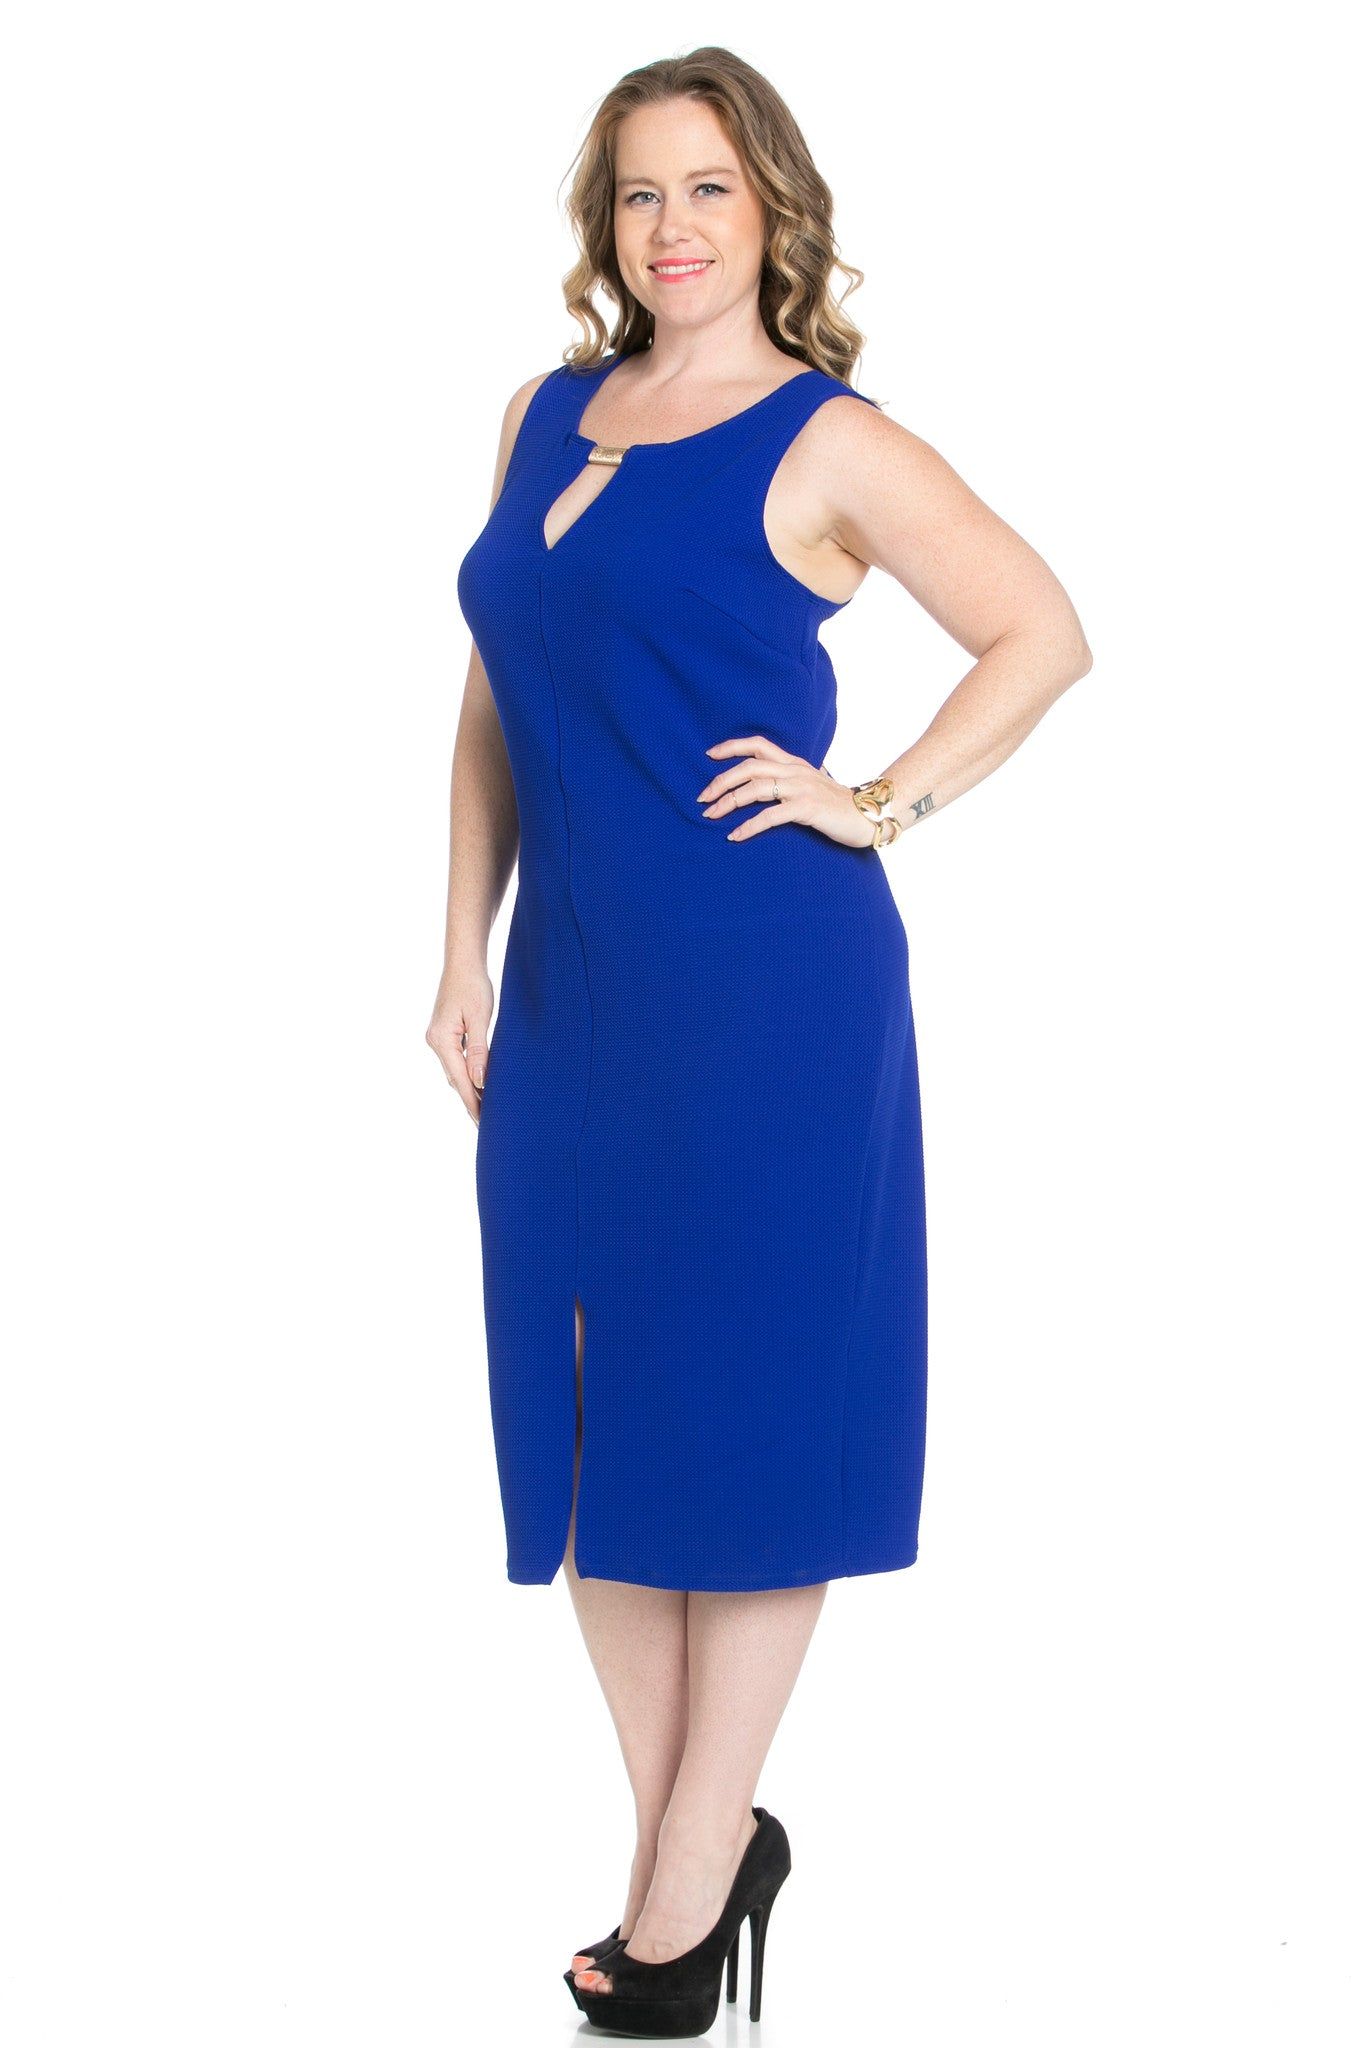 Royal Blue Modest a Bit with Bare Shoulders Dress - Dresses - My Yuccie - 6